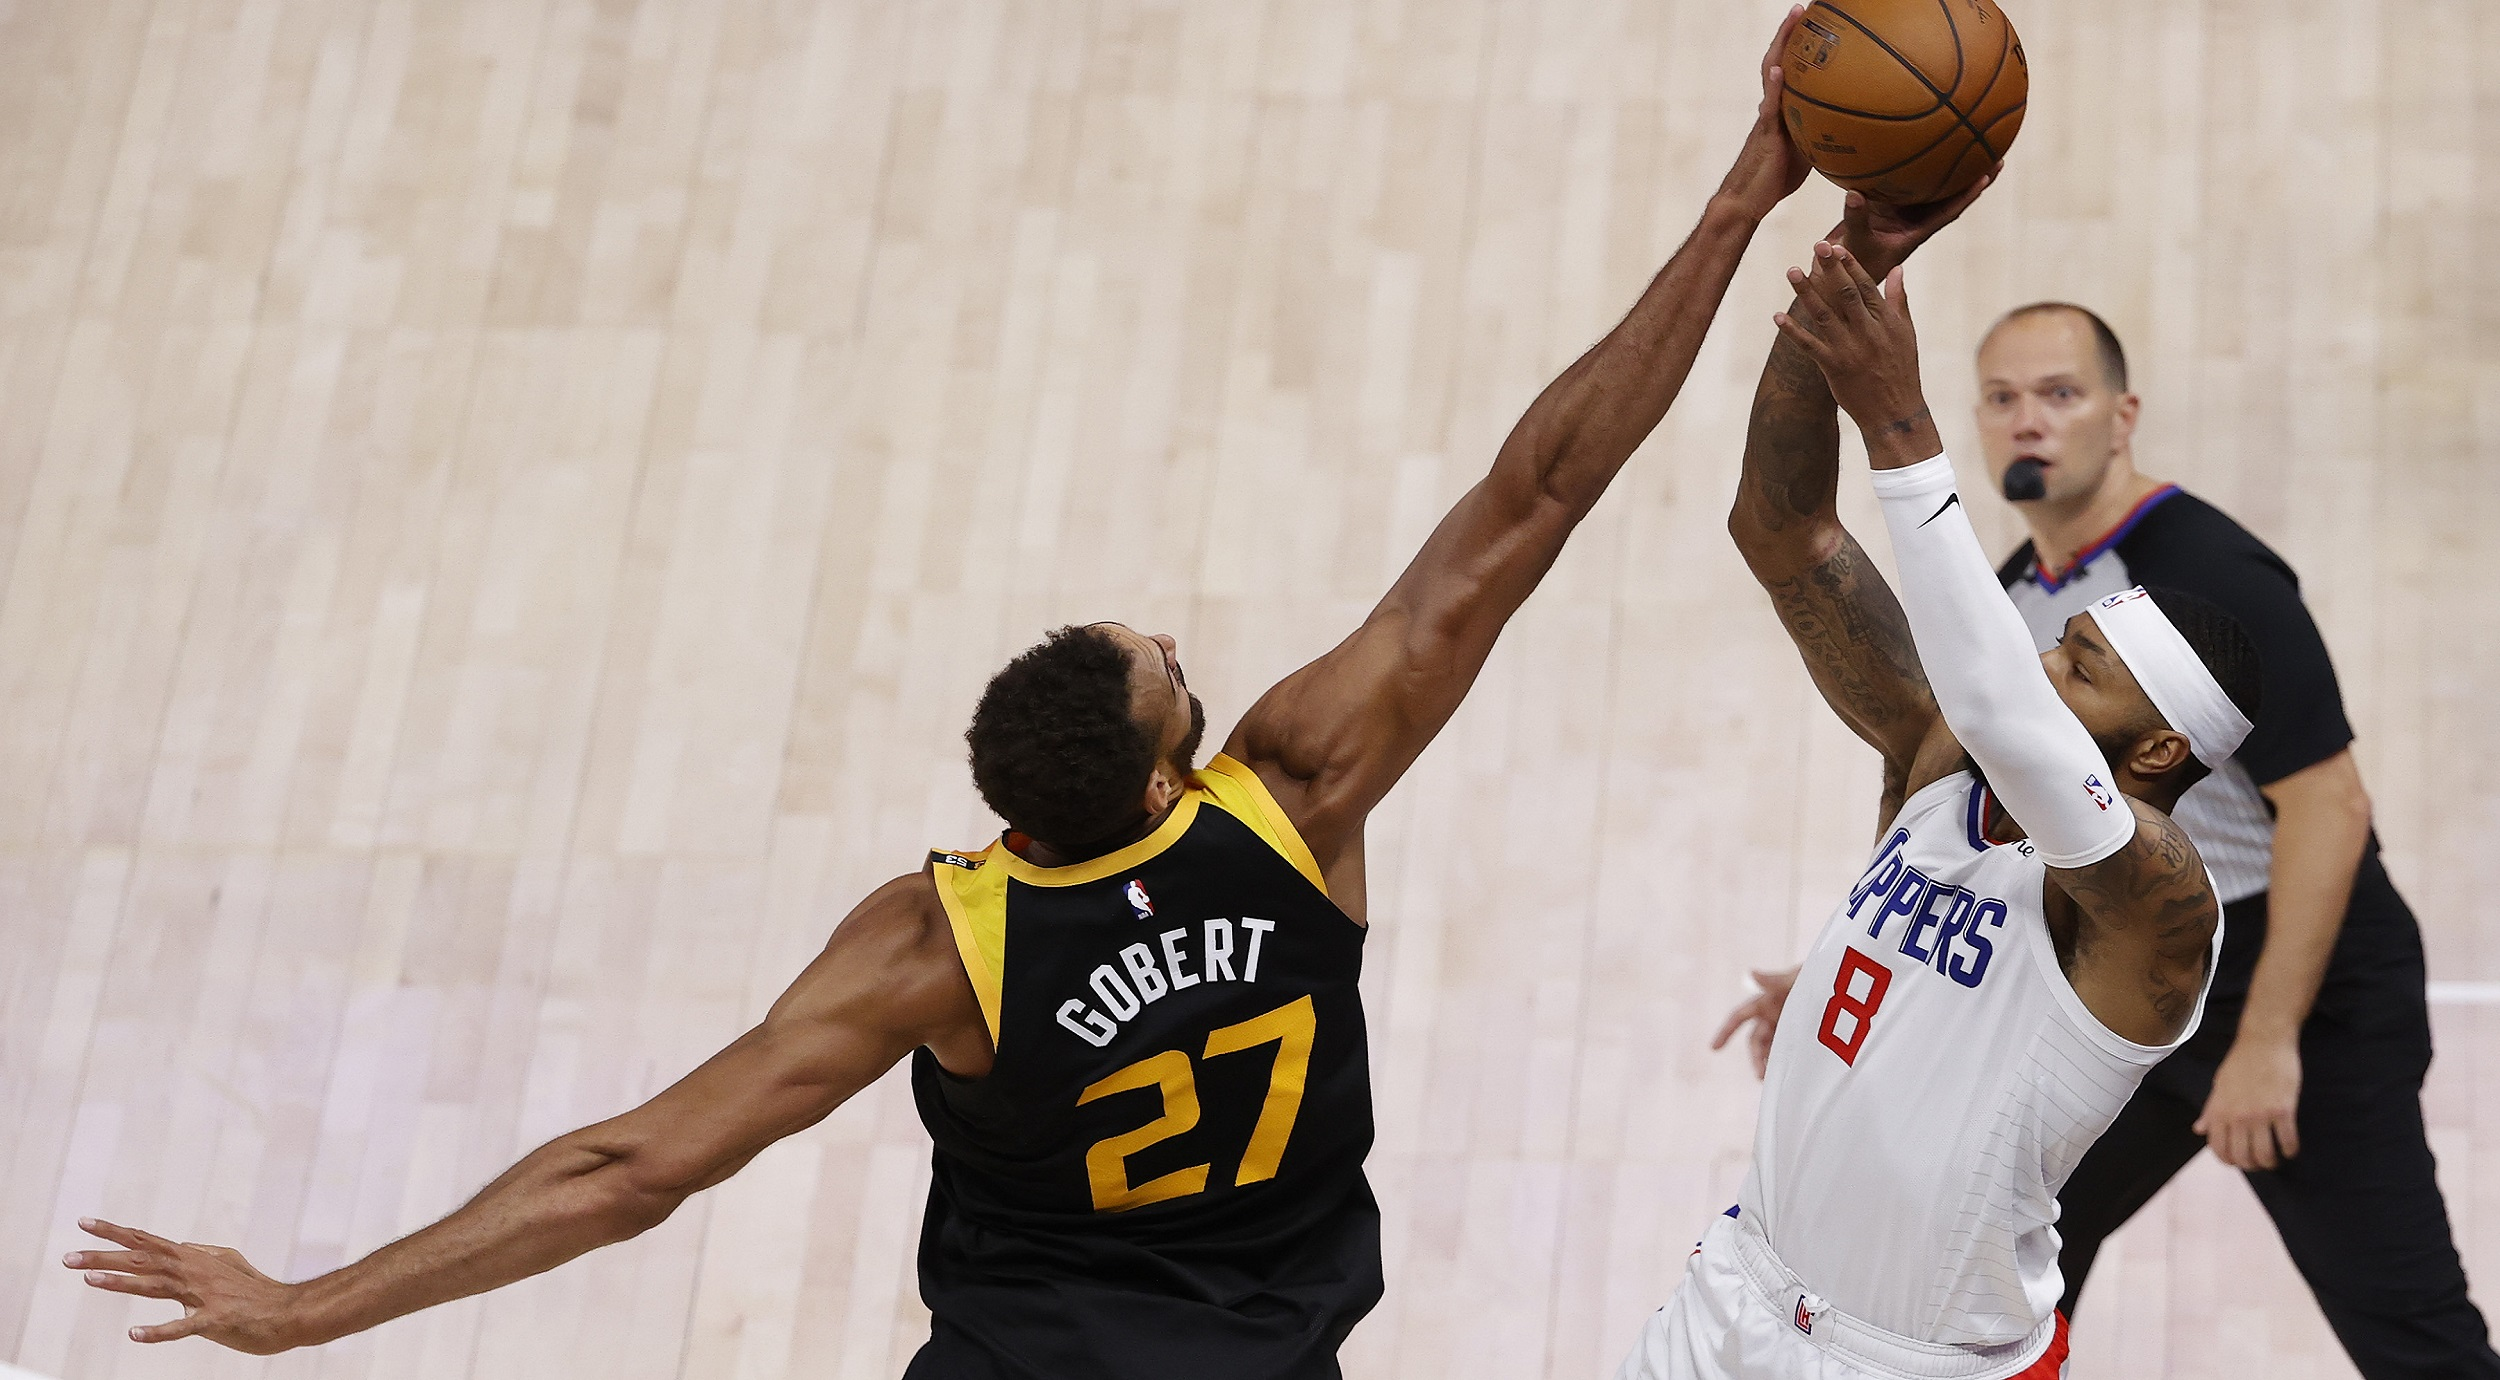 Rudy Gobert with one of the day's best blocks